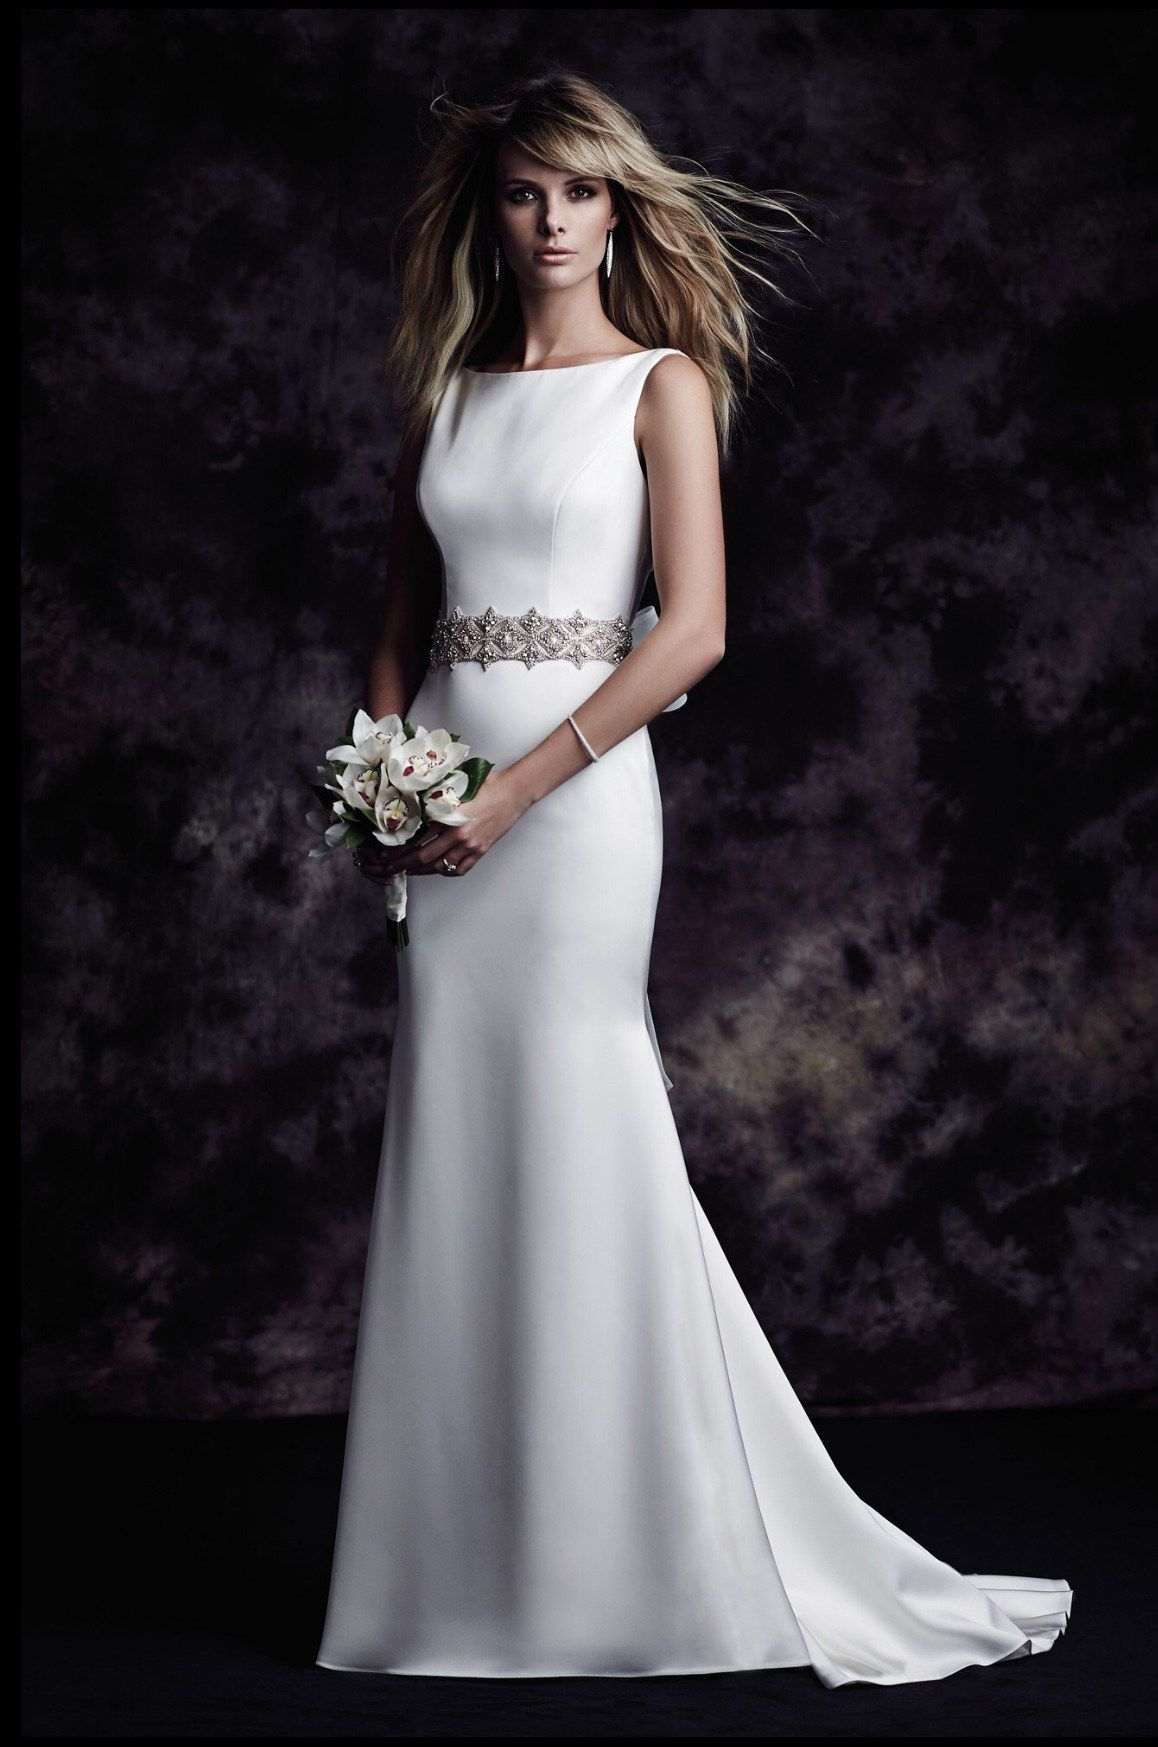 3f727ca811 Affordable Designer Wedding Dresses Contact us for an Appointment  www.yourlittlesecret.co.uk